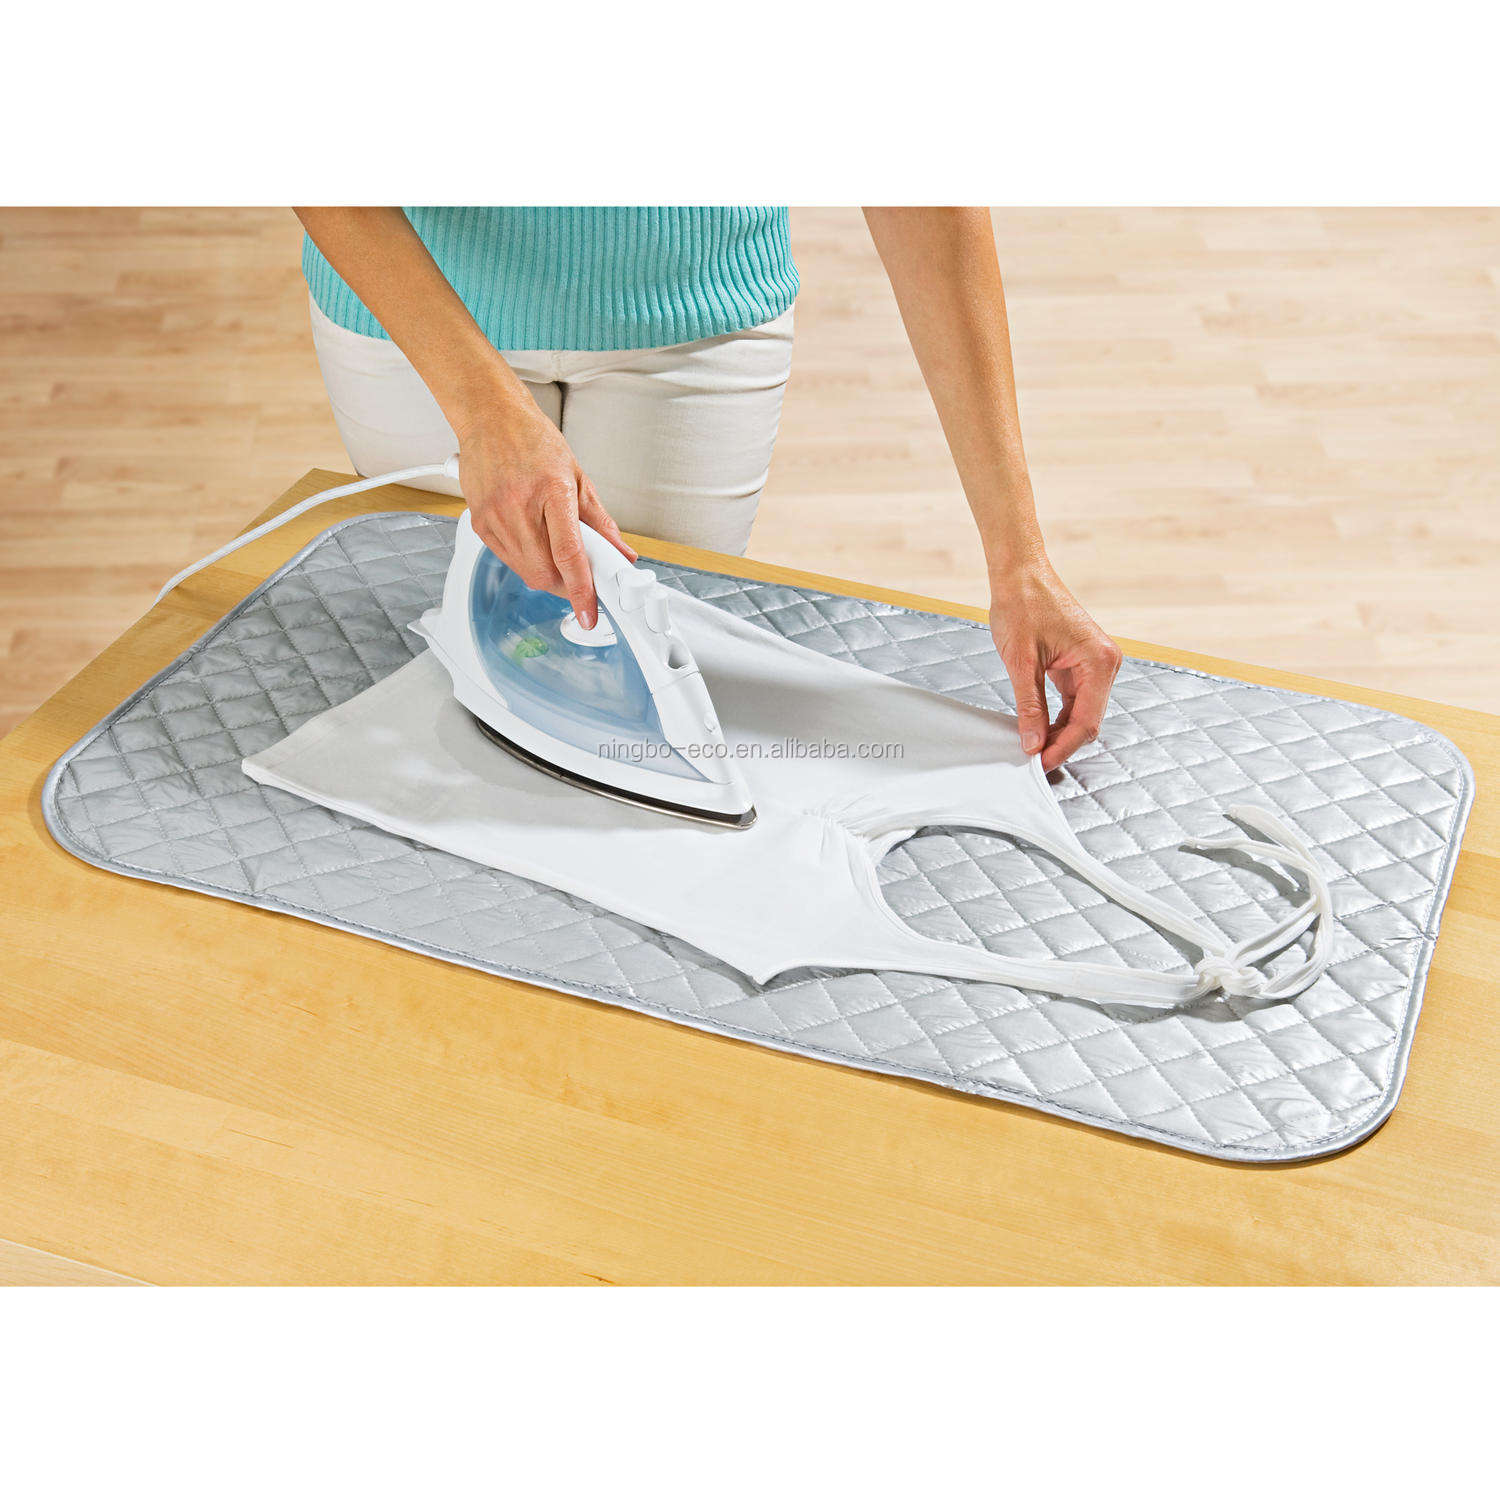 Cotton Polyester Portable Ironing Board Cover / Iron Ironing Mat Pad / Heat Resistant Mat